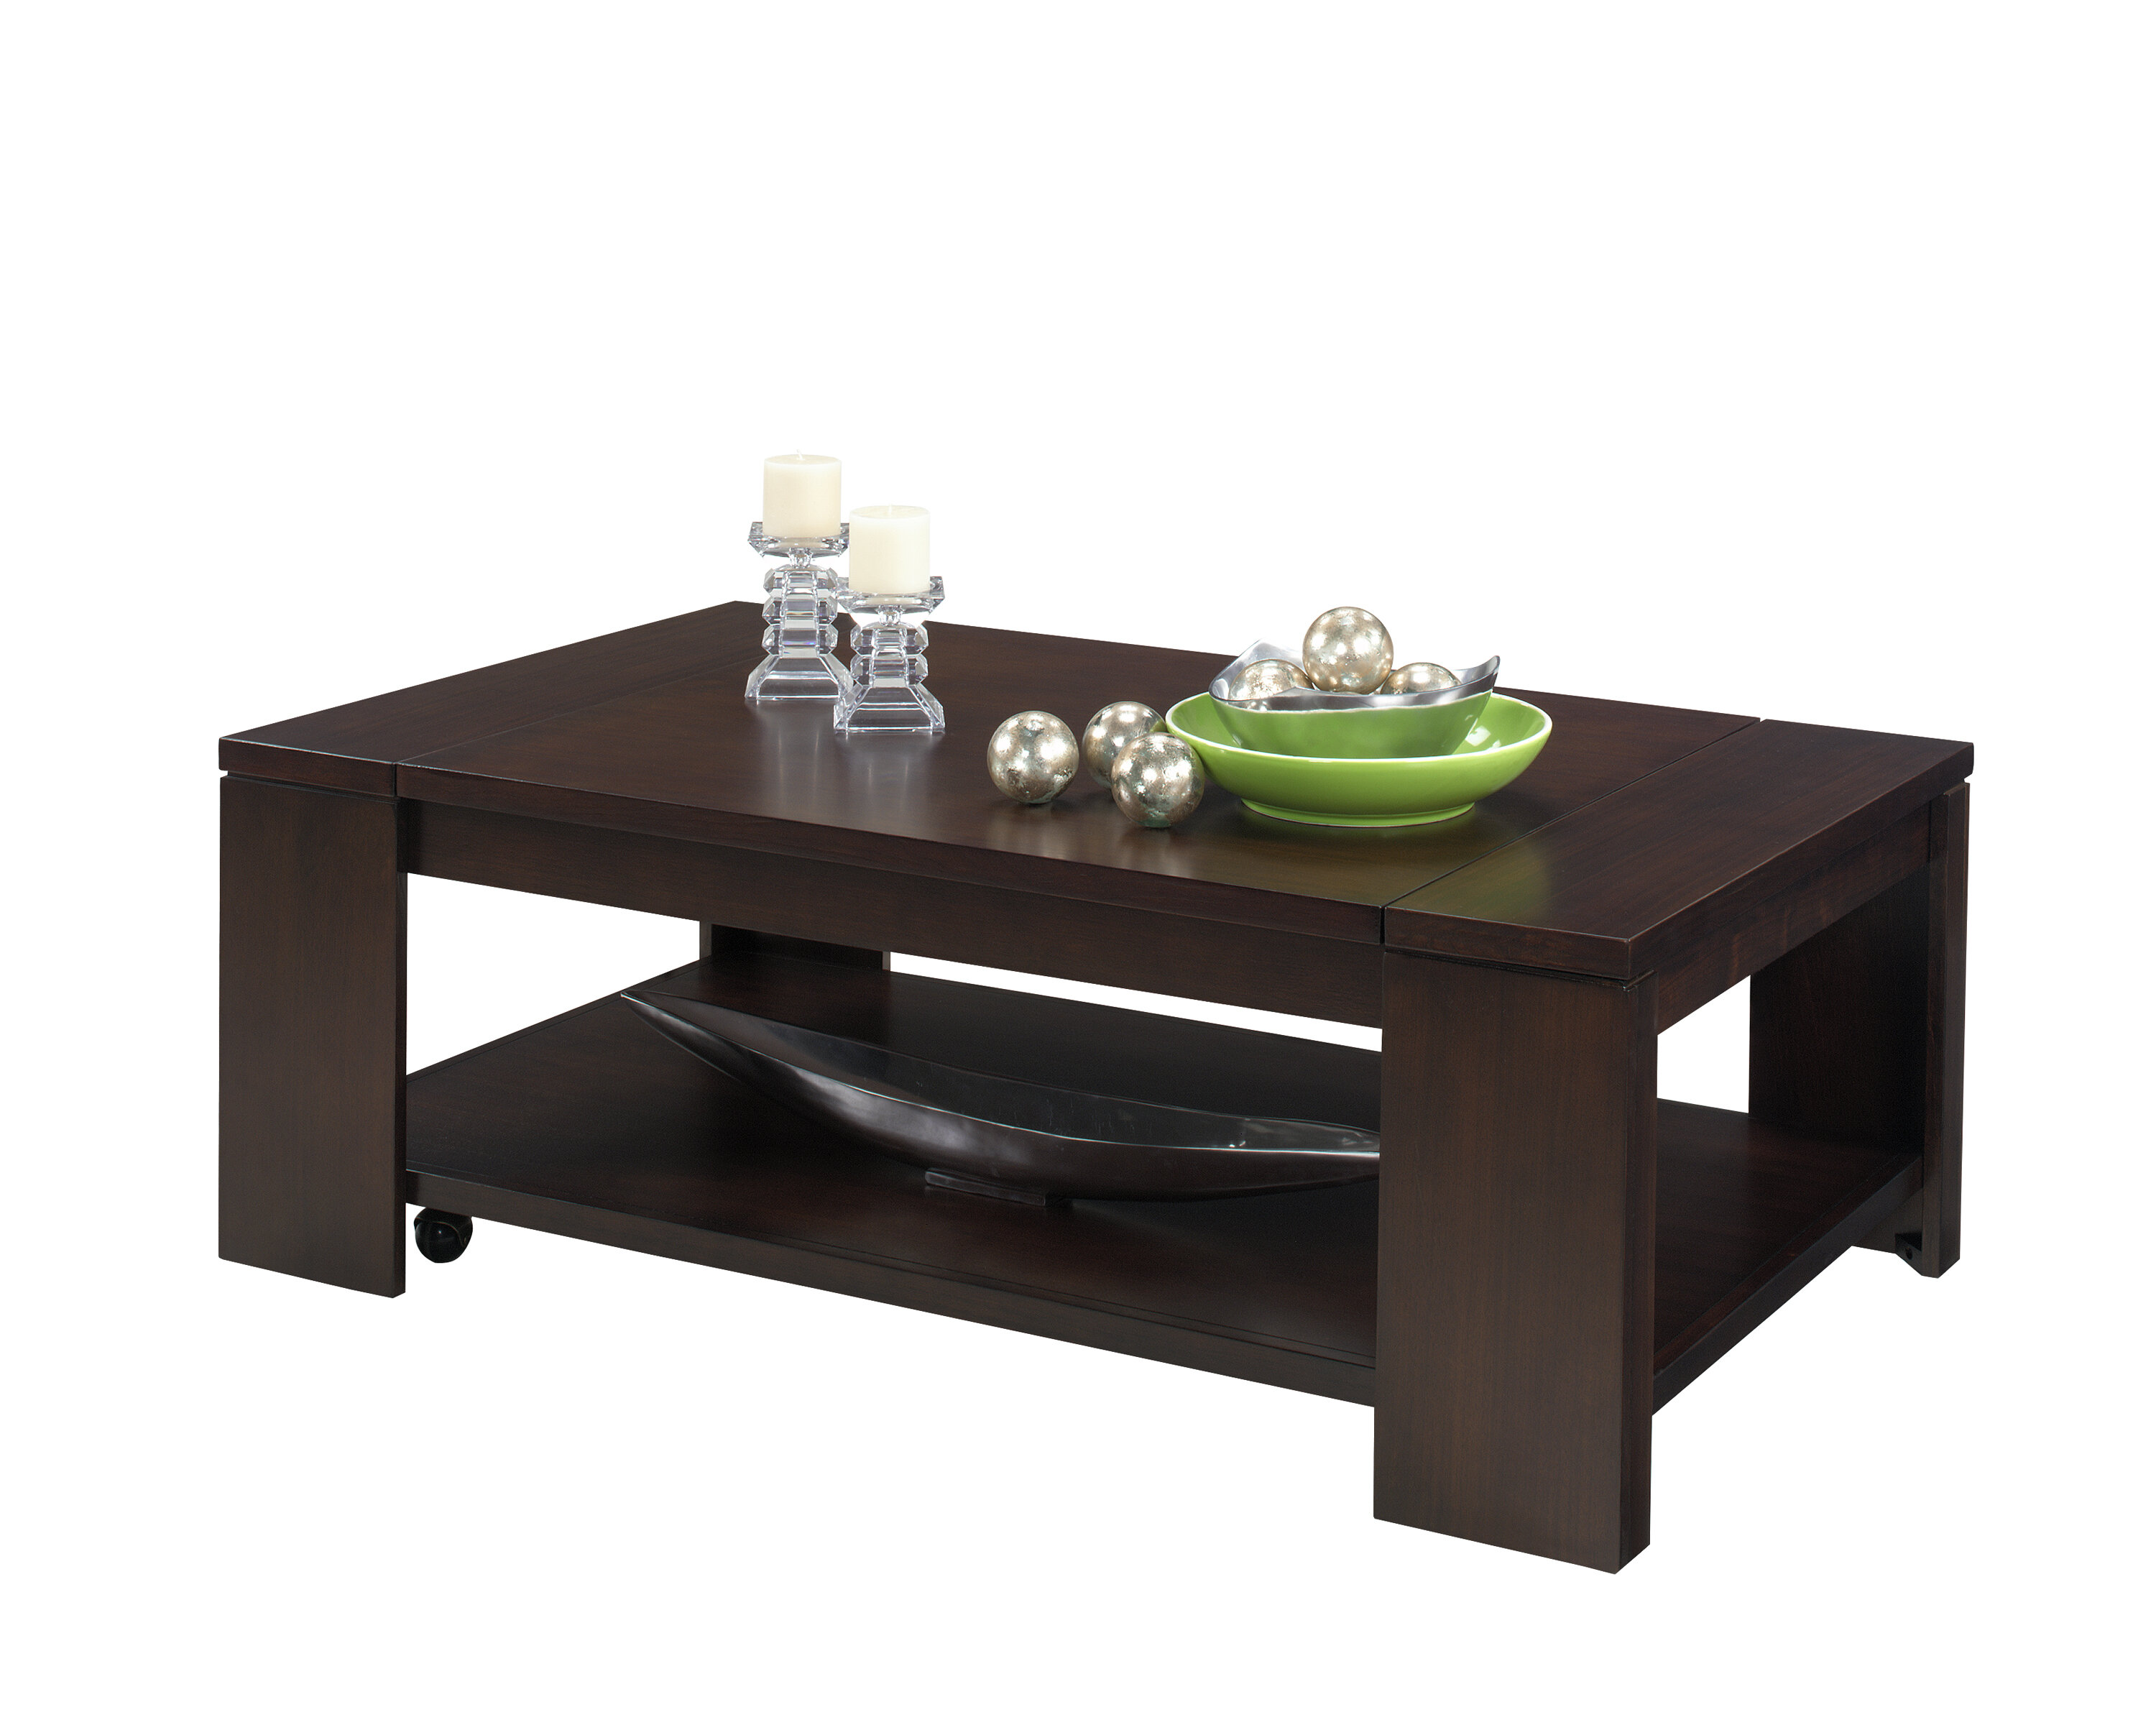 Progressive Furniture Waverly Lift Top Coffee Table & Reviews